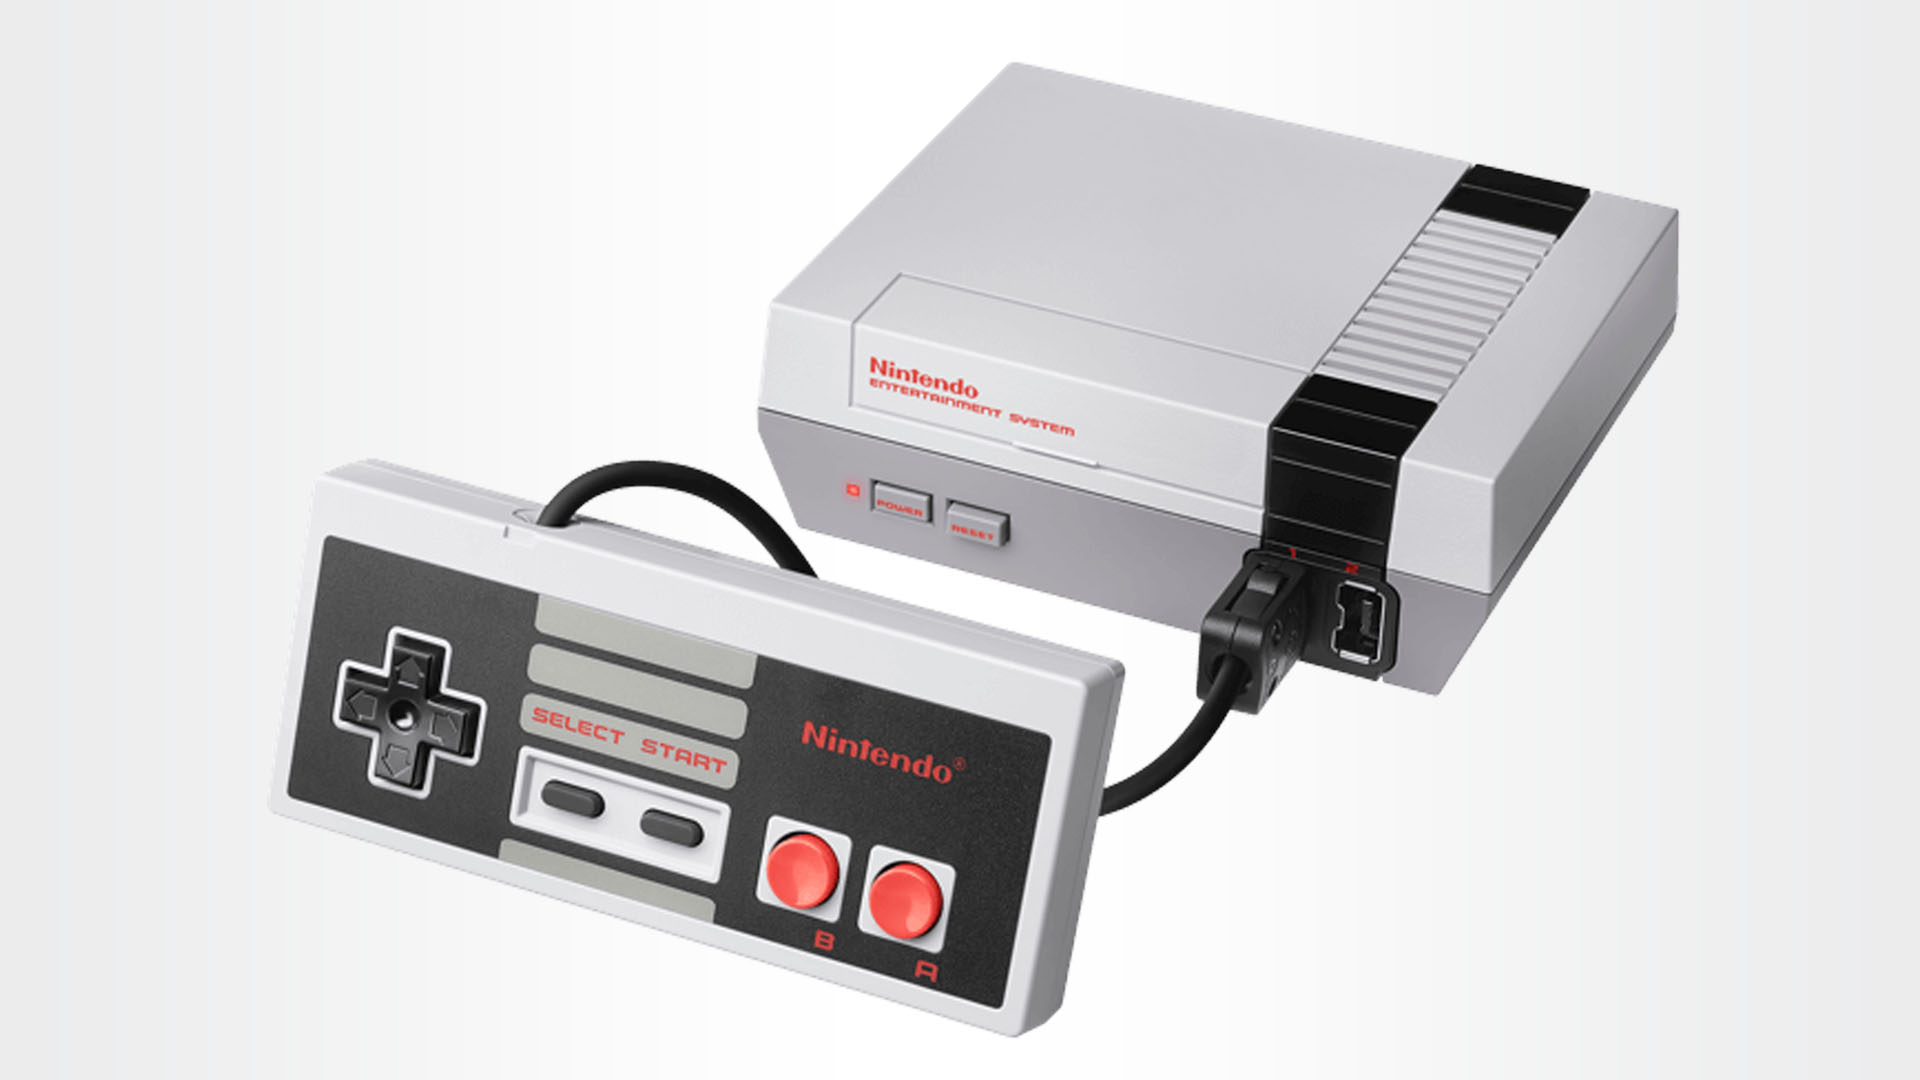 Nintendo Entertainment System - Classic Edition